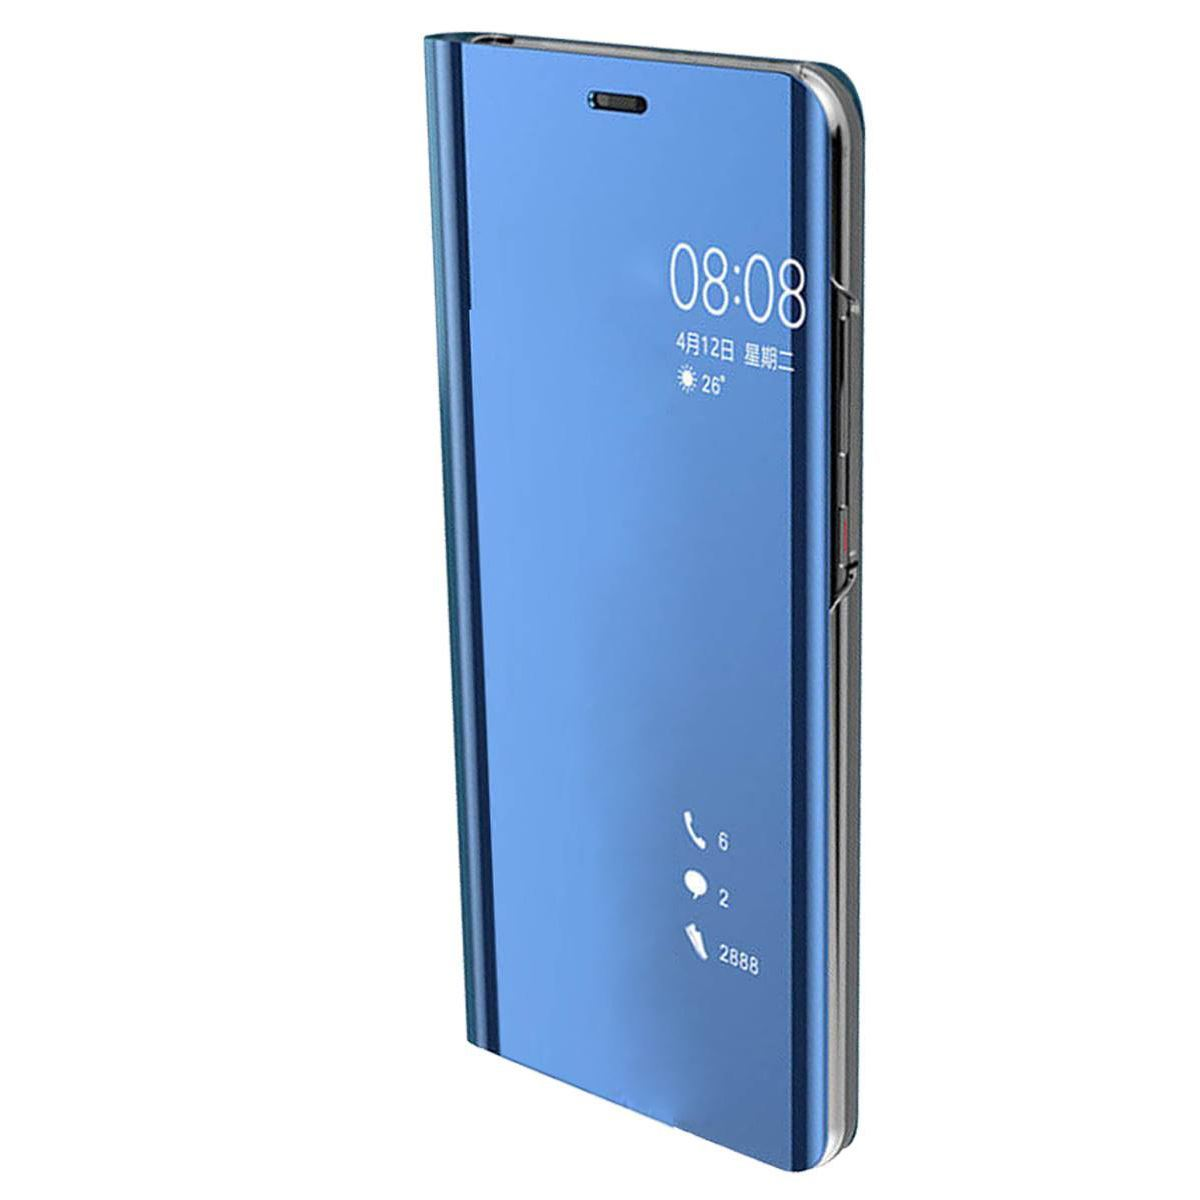 Huawei P20 Case Smart View Mirror Flip Stand Cover - Blue